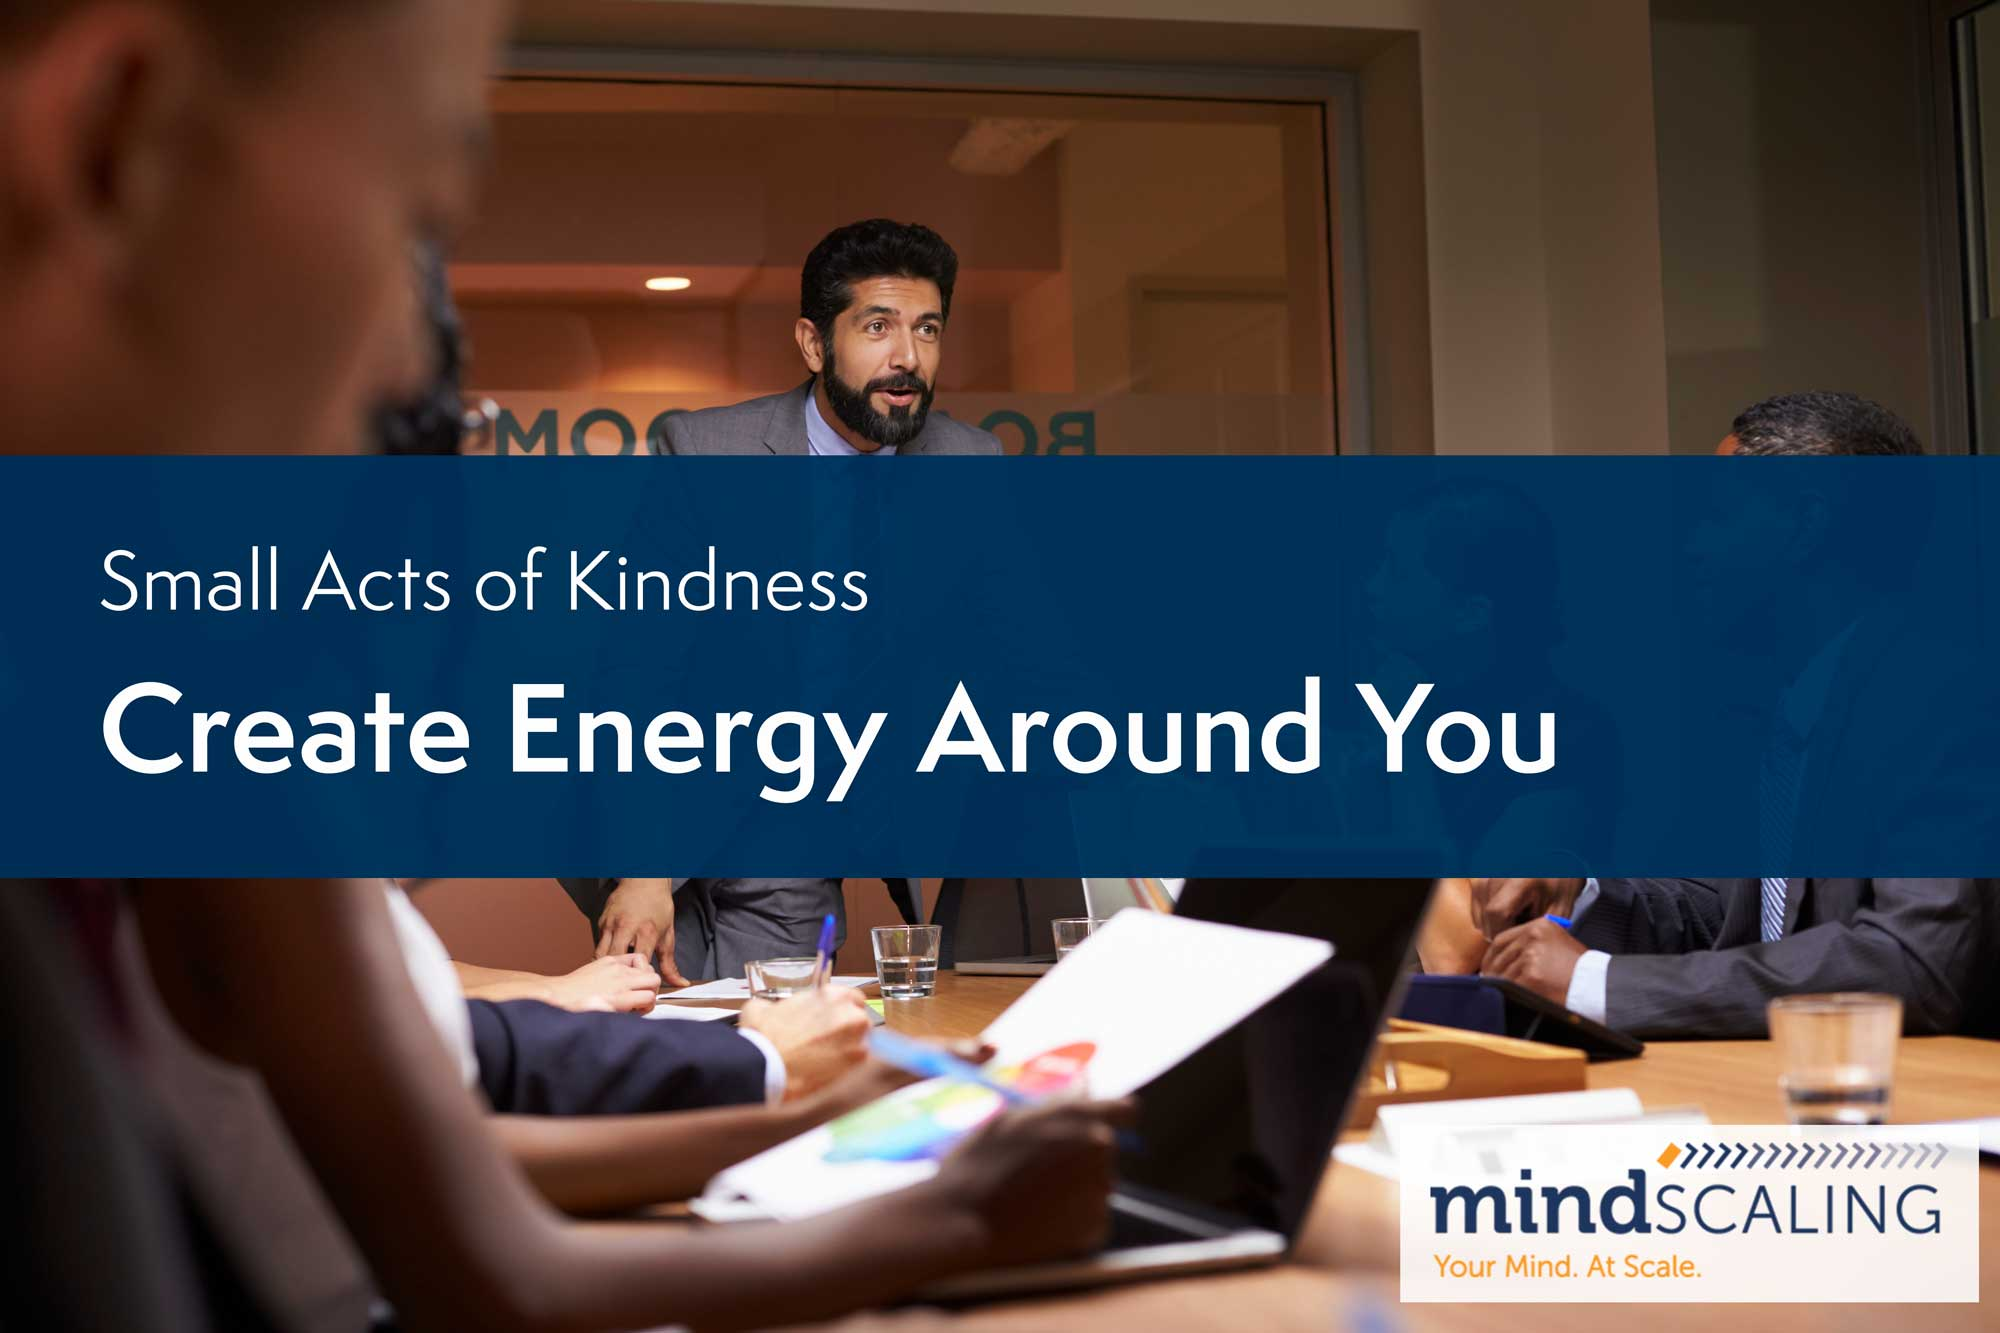 Small Acts of Kindness: Create Energy Around You